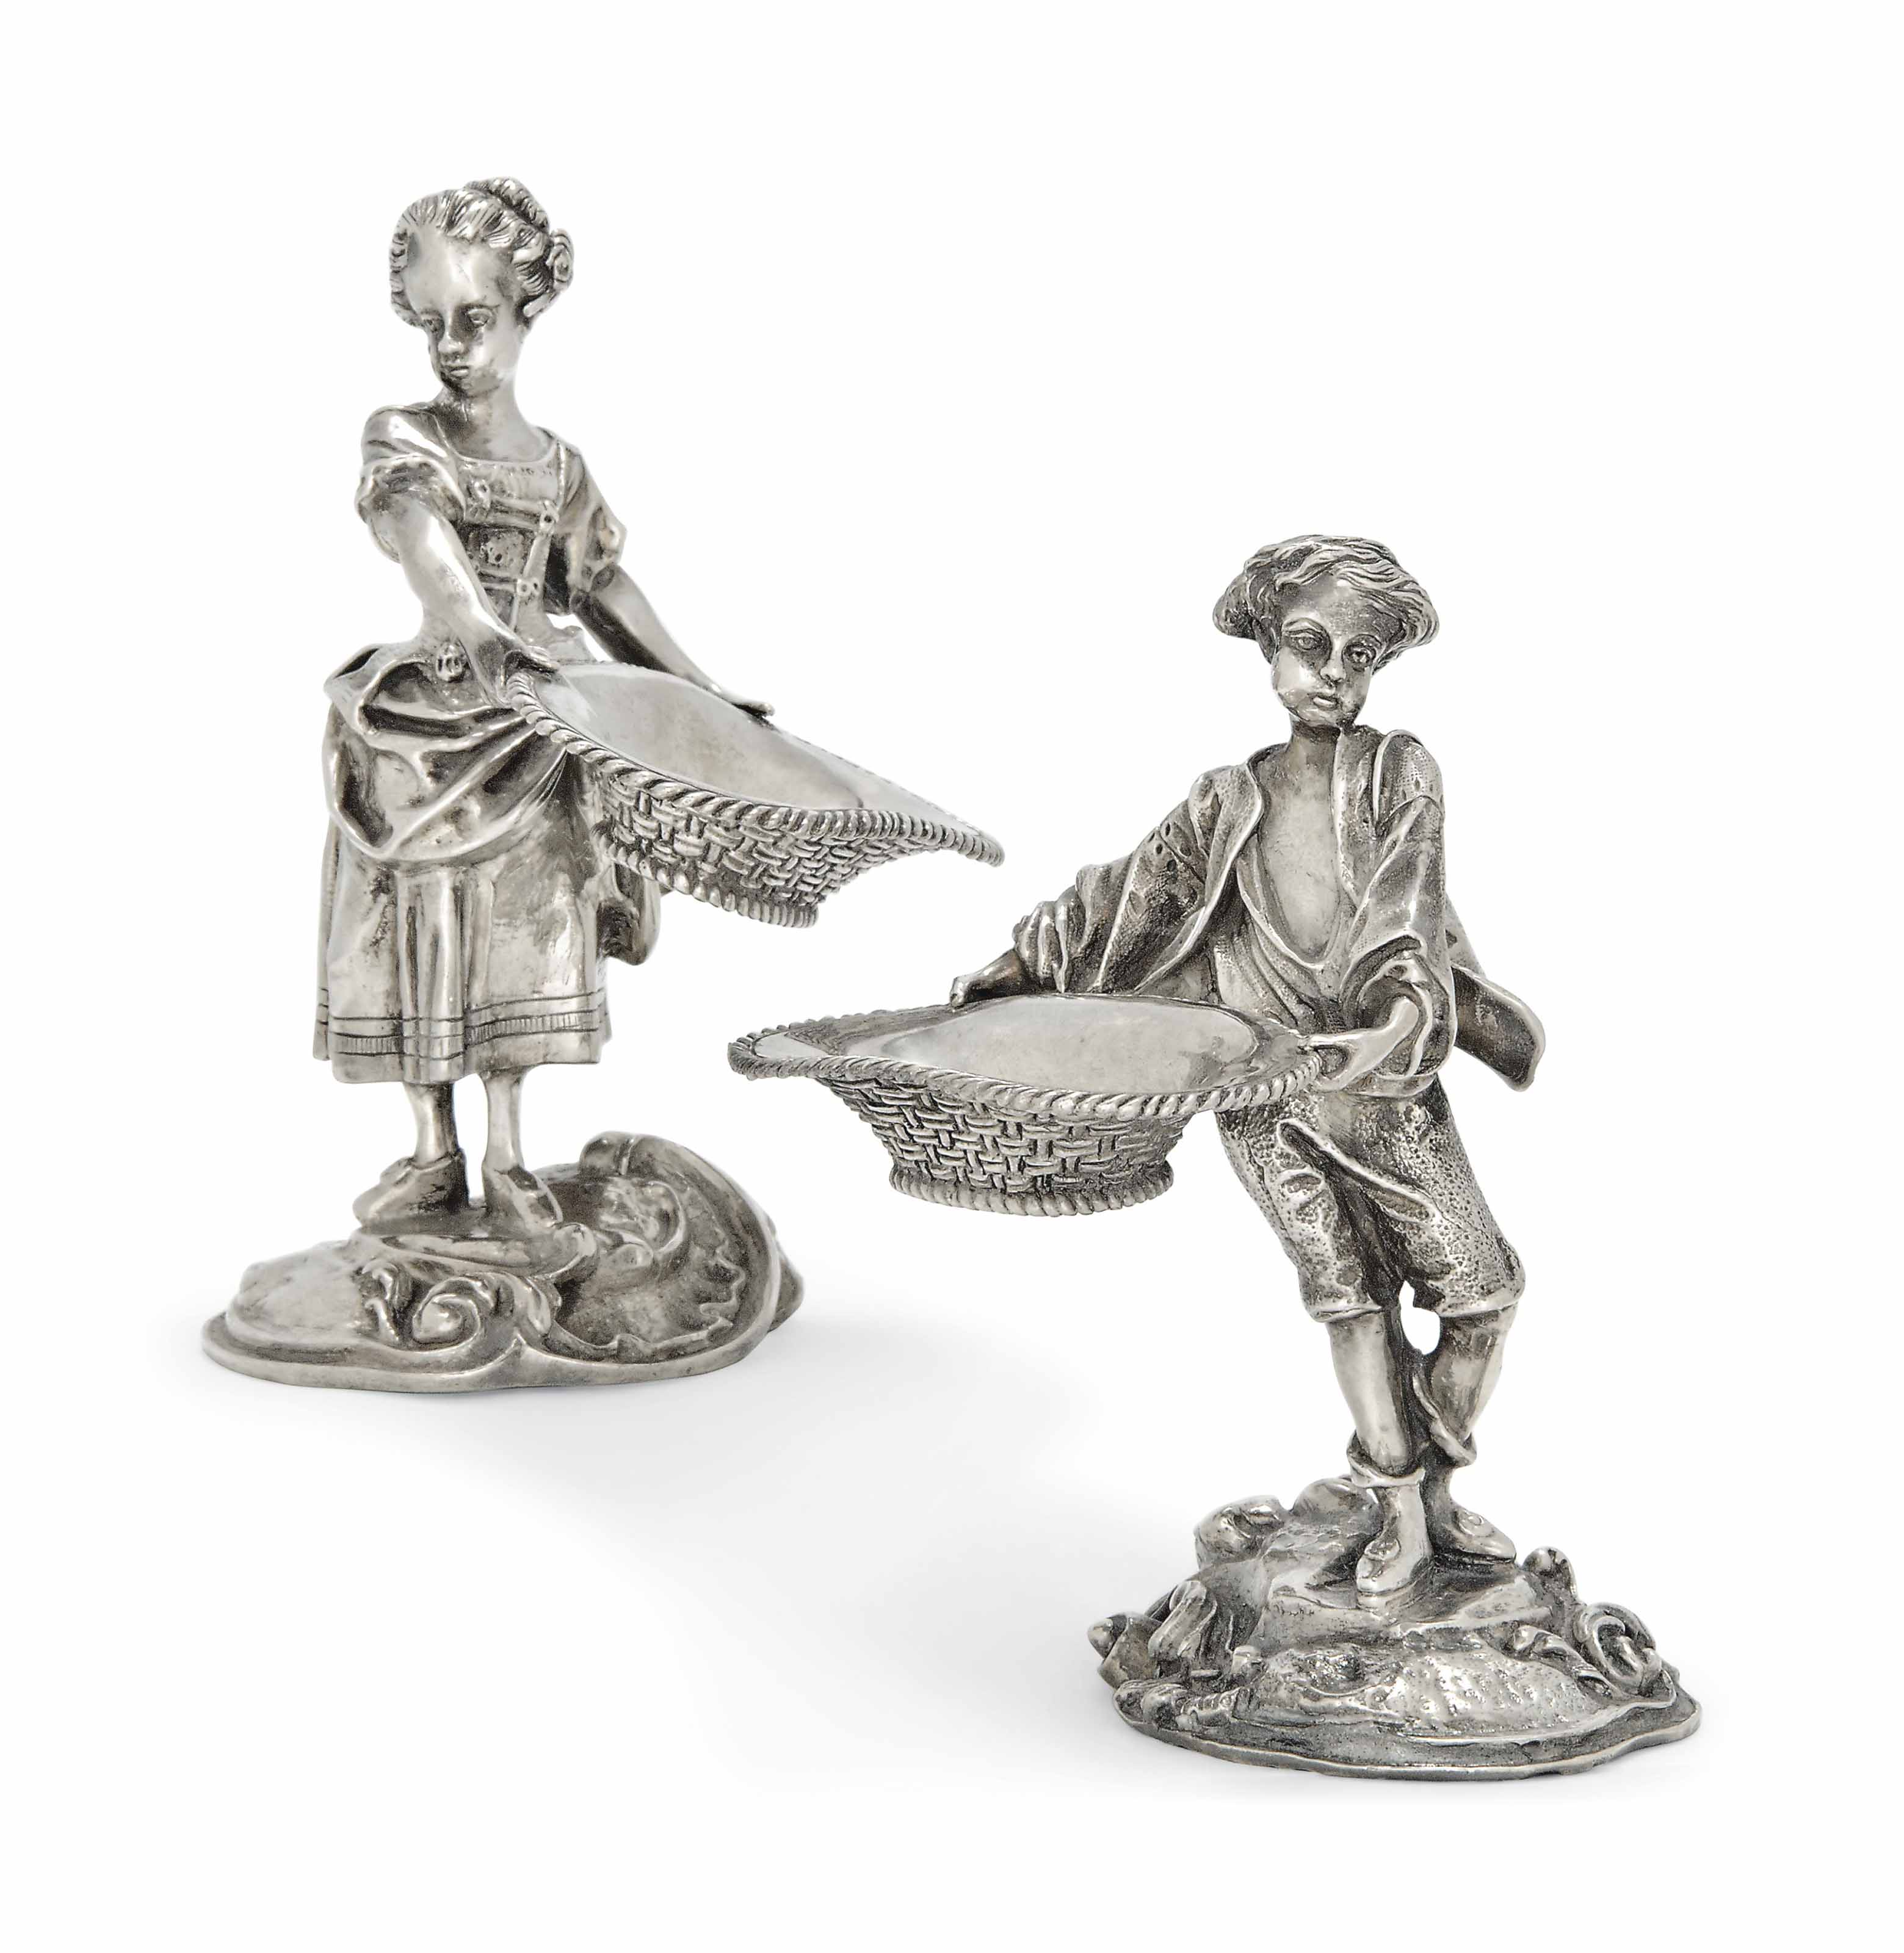 A PAIR OF LATE VICTORIAN SCOTTISH CAST SILVER FIGURAL SALTS